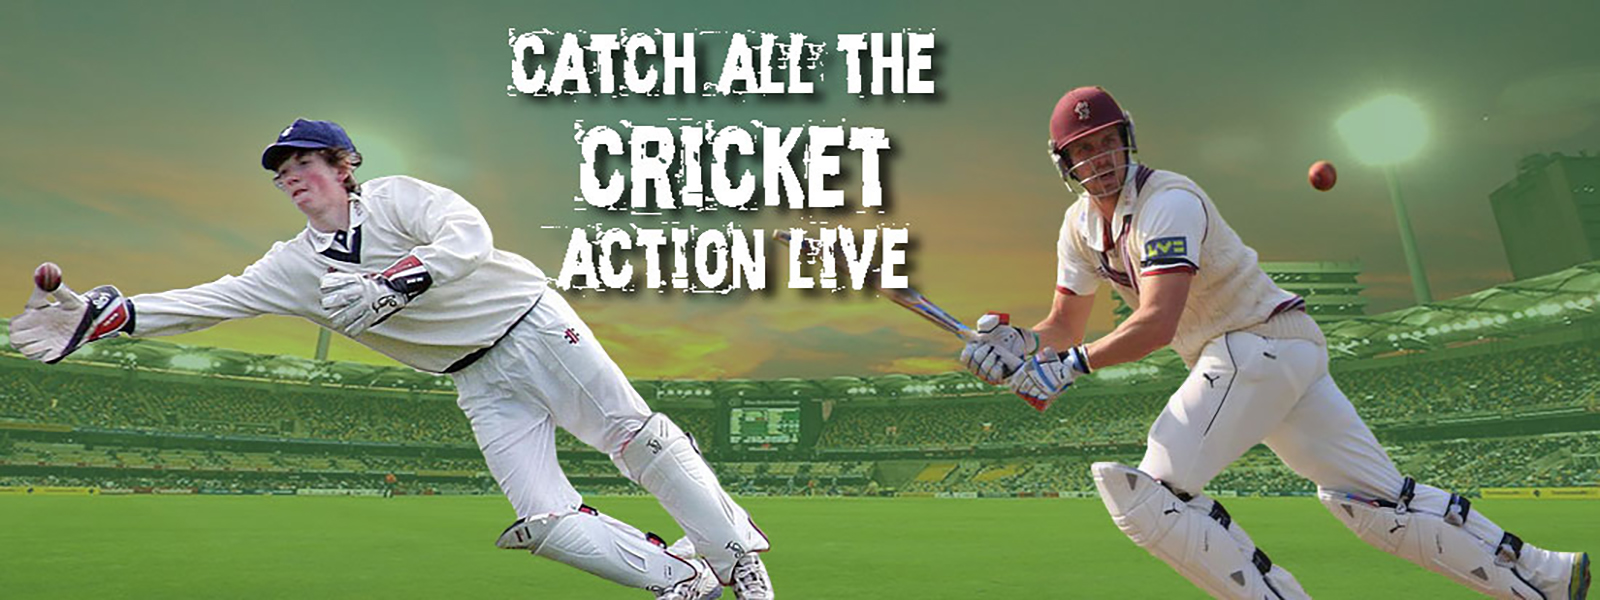 All of the Major Cricket shown at Walkabout Sports Bar, the very best Aussie sports bar in Karon Beach, Phuket, Thailand.